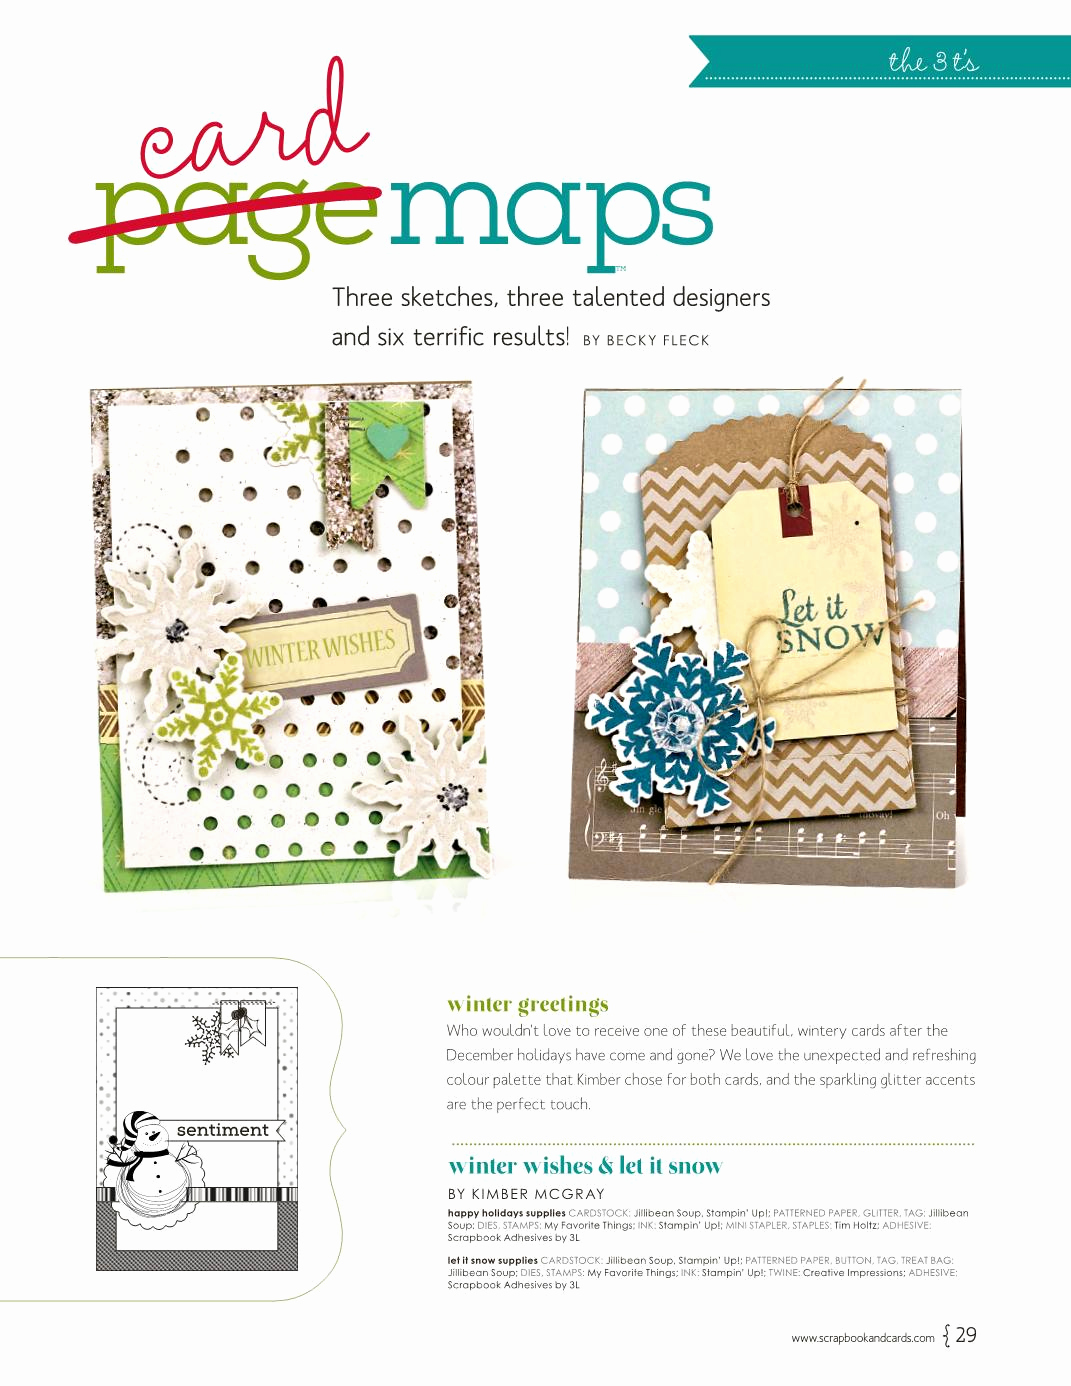 Adventskalender to Go Stampin Up Luxus Index Of issues 2014 Winter Files assets Mobile Pages